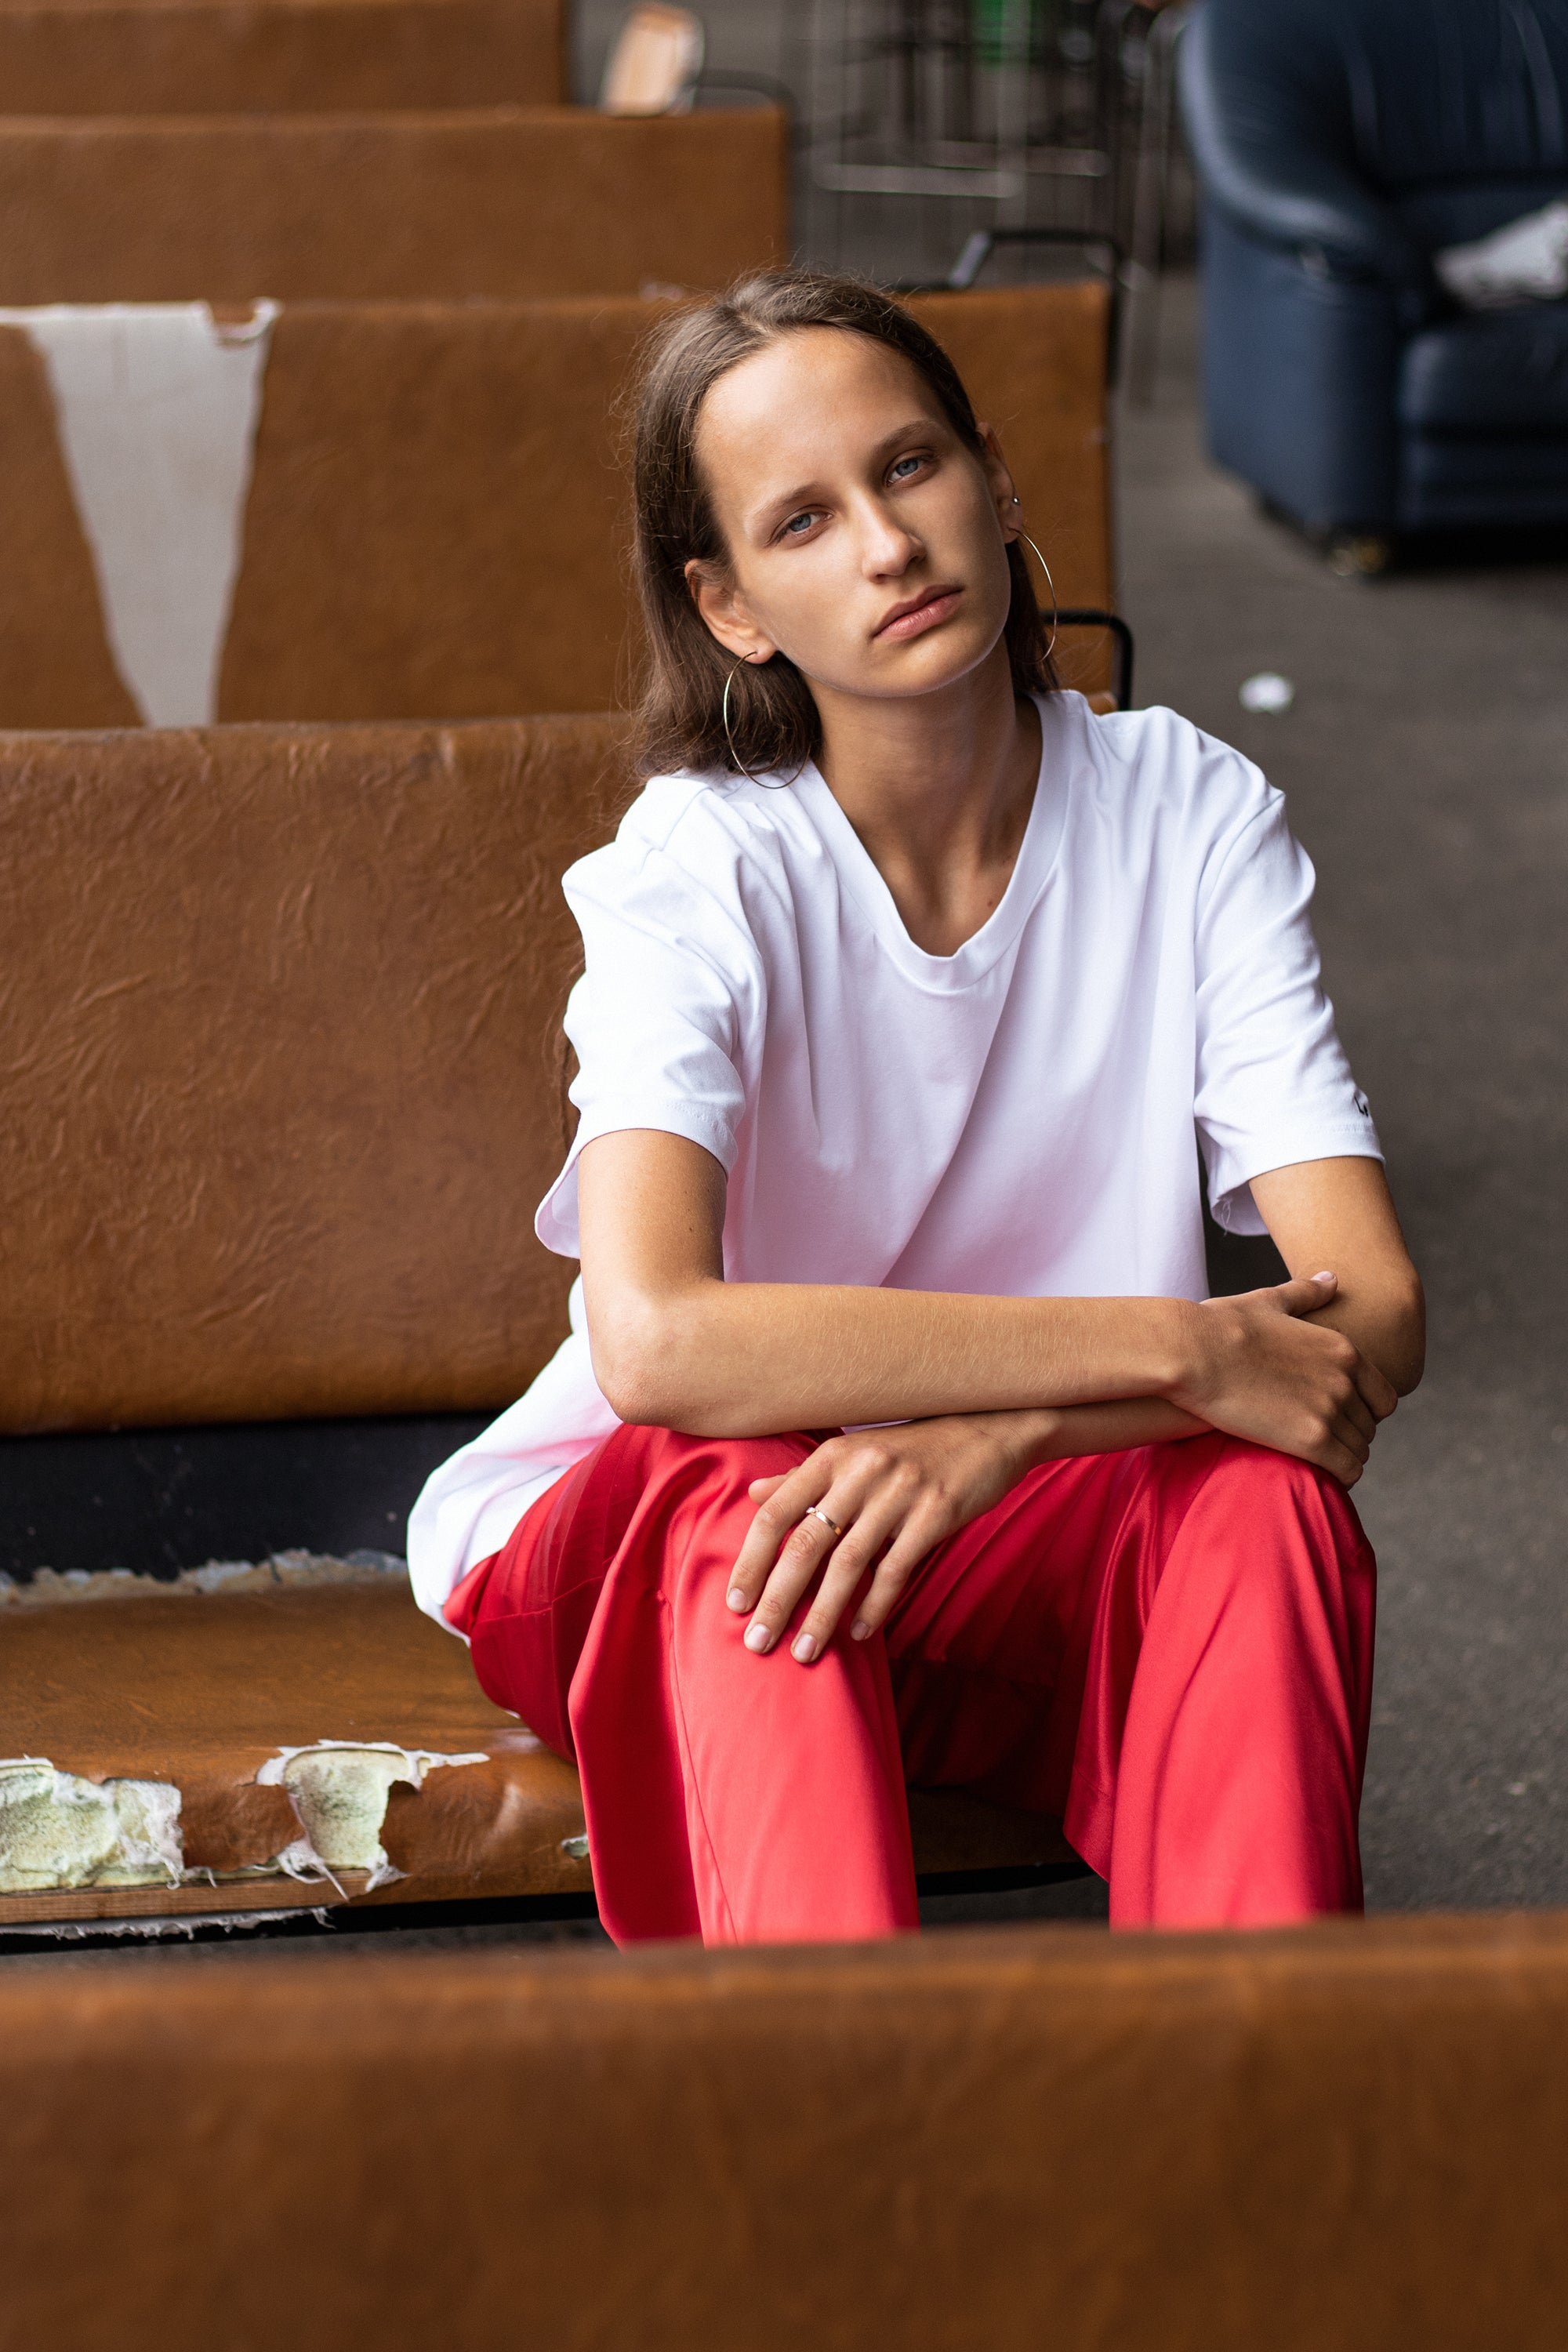 le-slap-girl-fashion-photoshoot-white-logo-tshirt-red-pallazo-pants.jpg